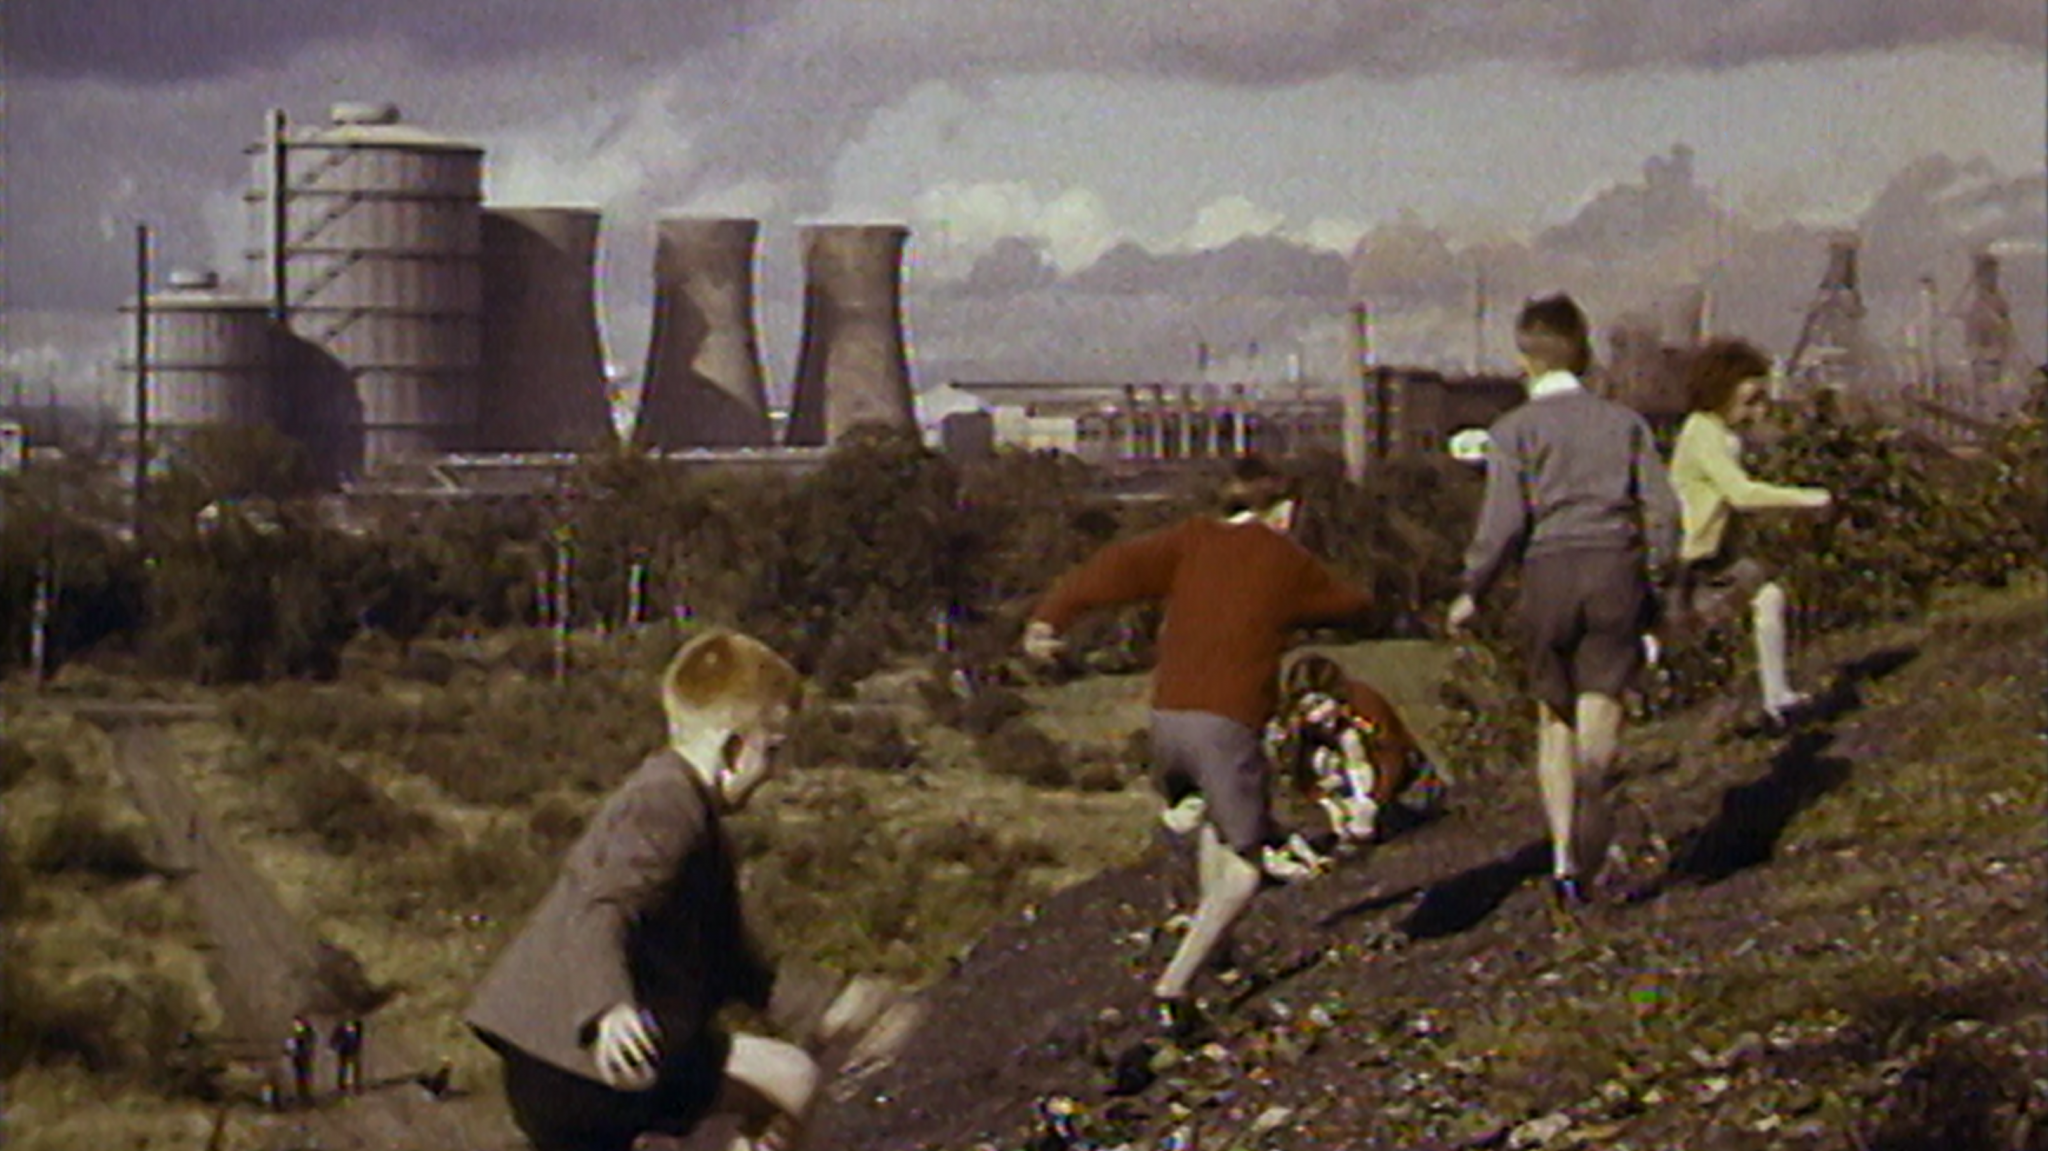 A still from footage from the 70s: children running along a hill with a massive power station in the background.